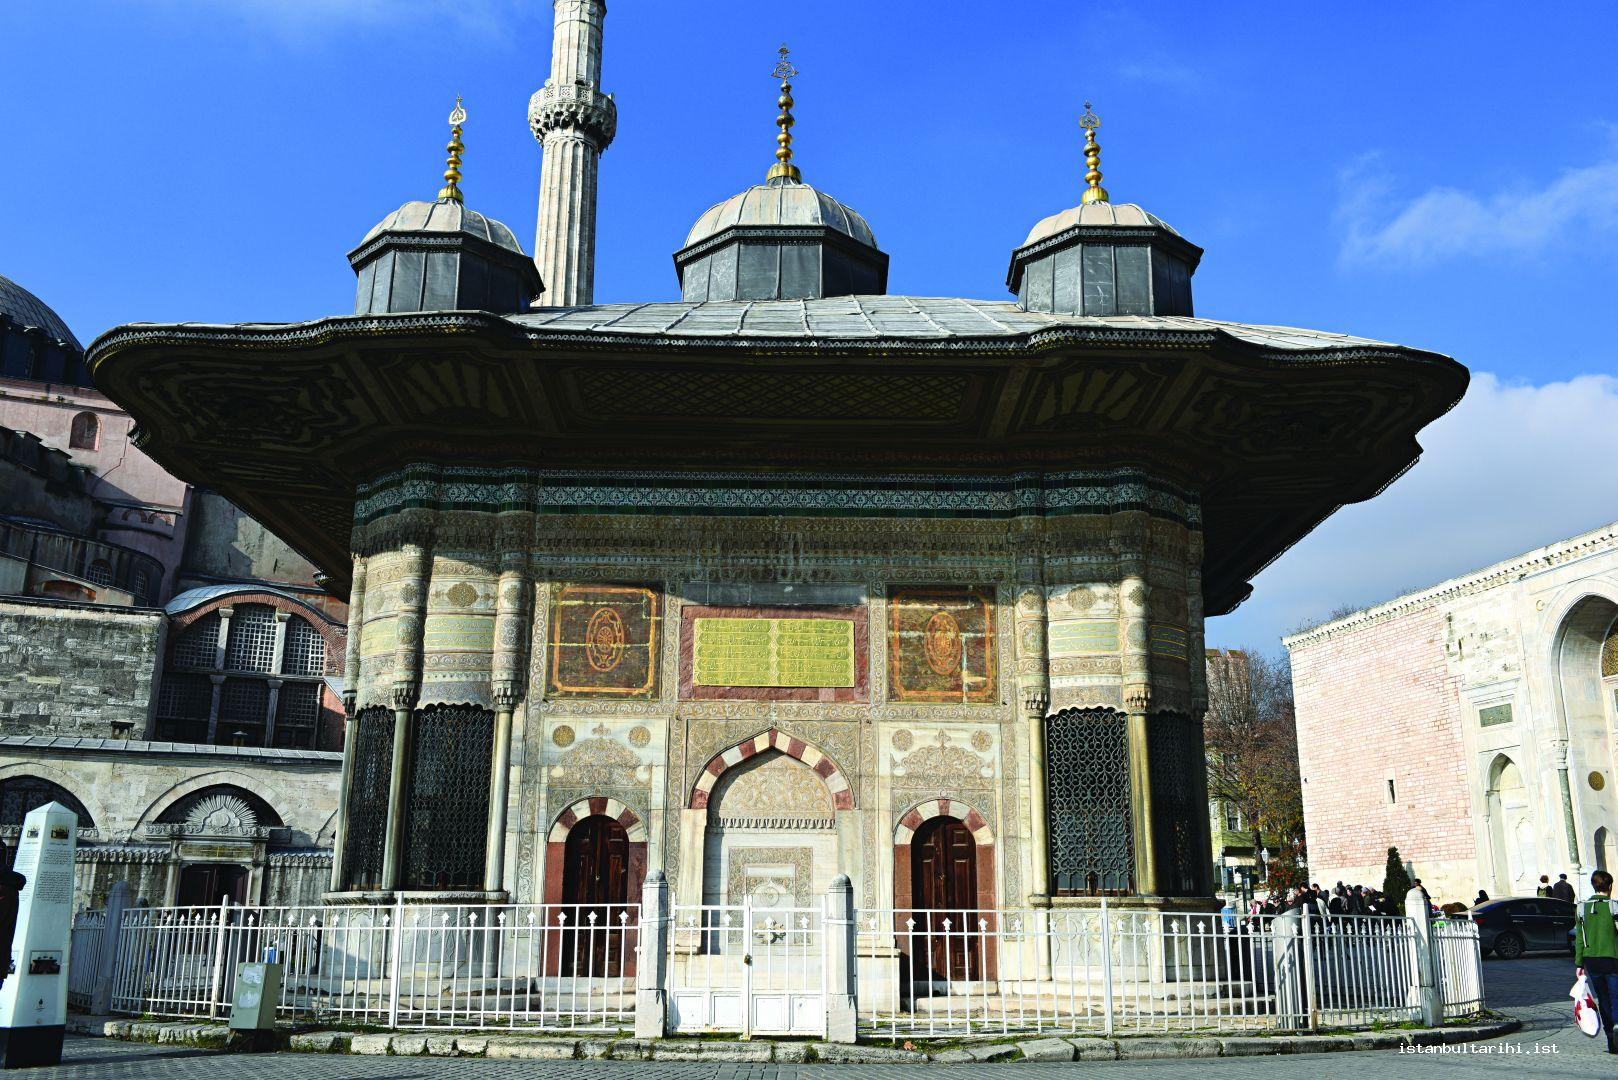 4- Sultan Ahmet III Fountain (Topkapı)